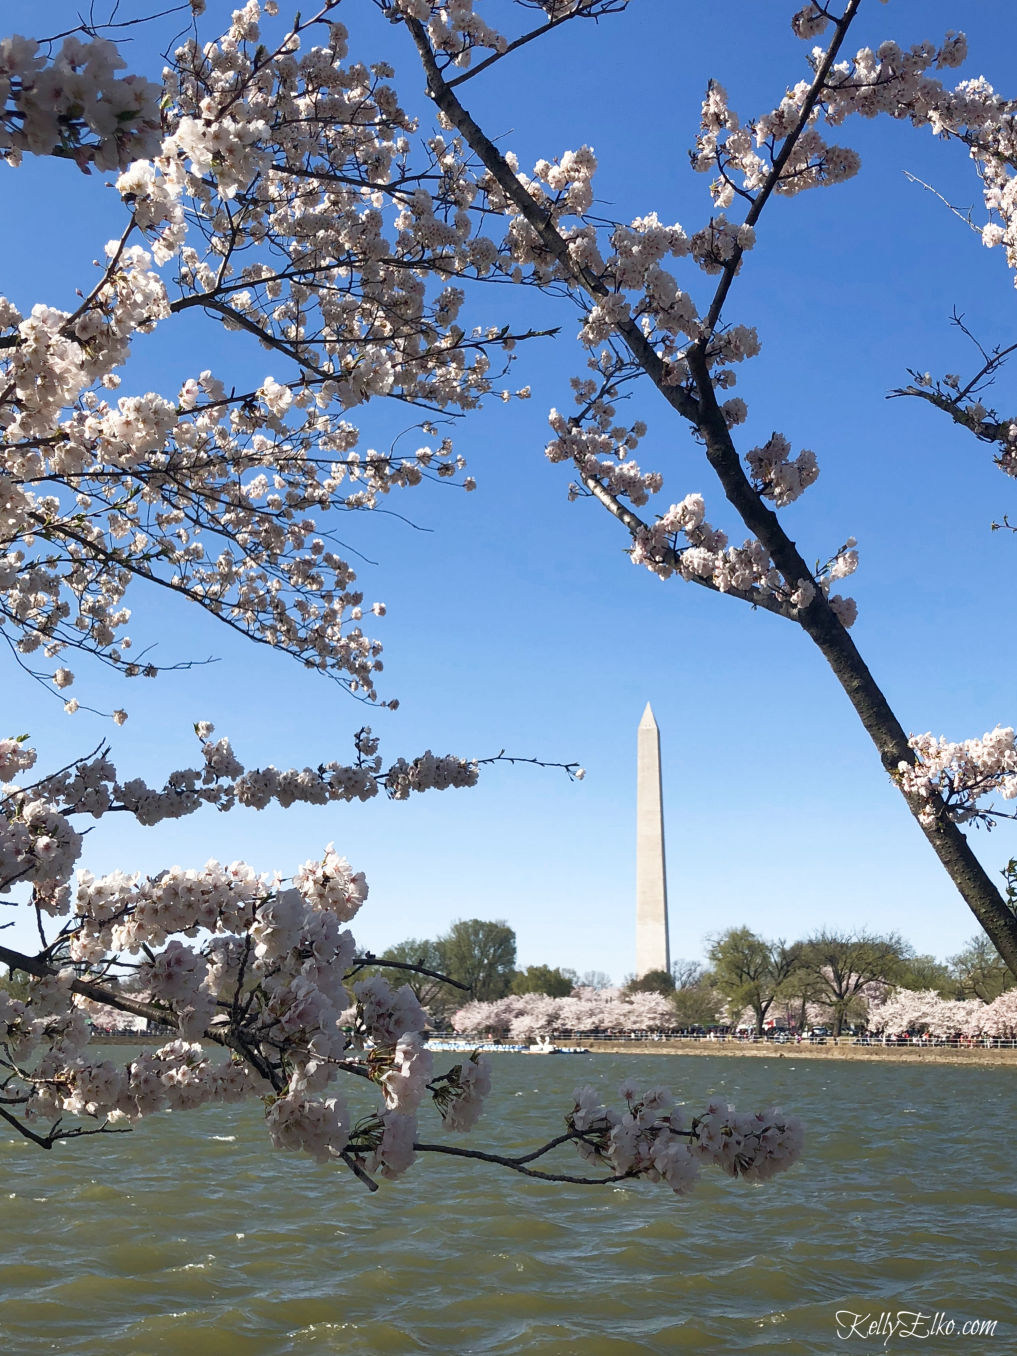 Weekend in Washington DC kellyelko.com #travel #travelblogger #washingtondc #dc #vacation #familytravel #getaway #escape #cherryblossoms